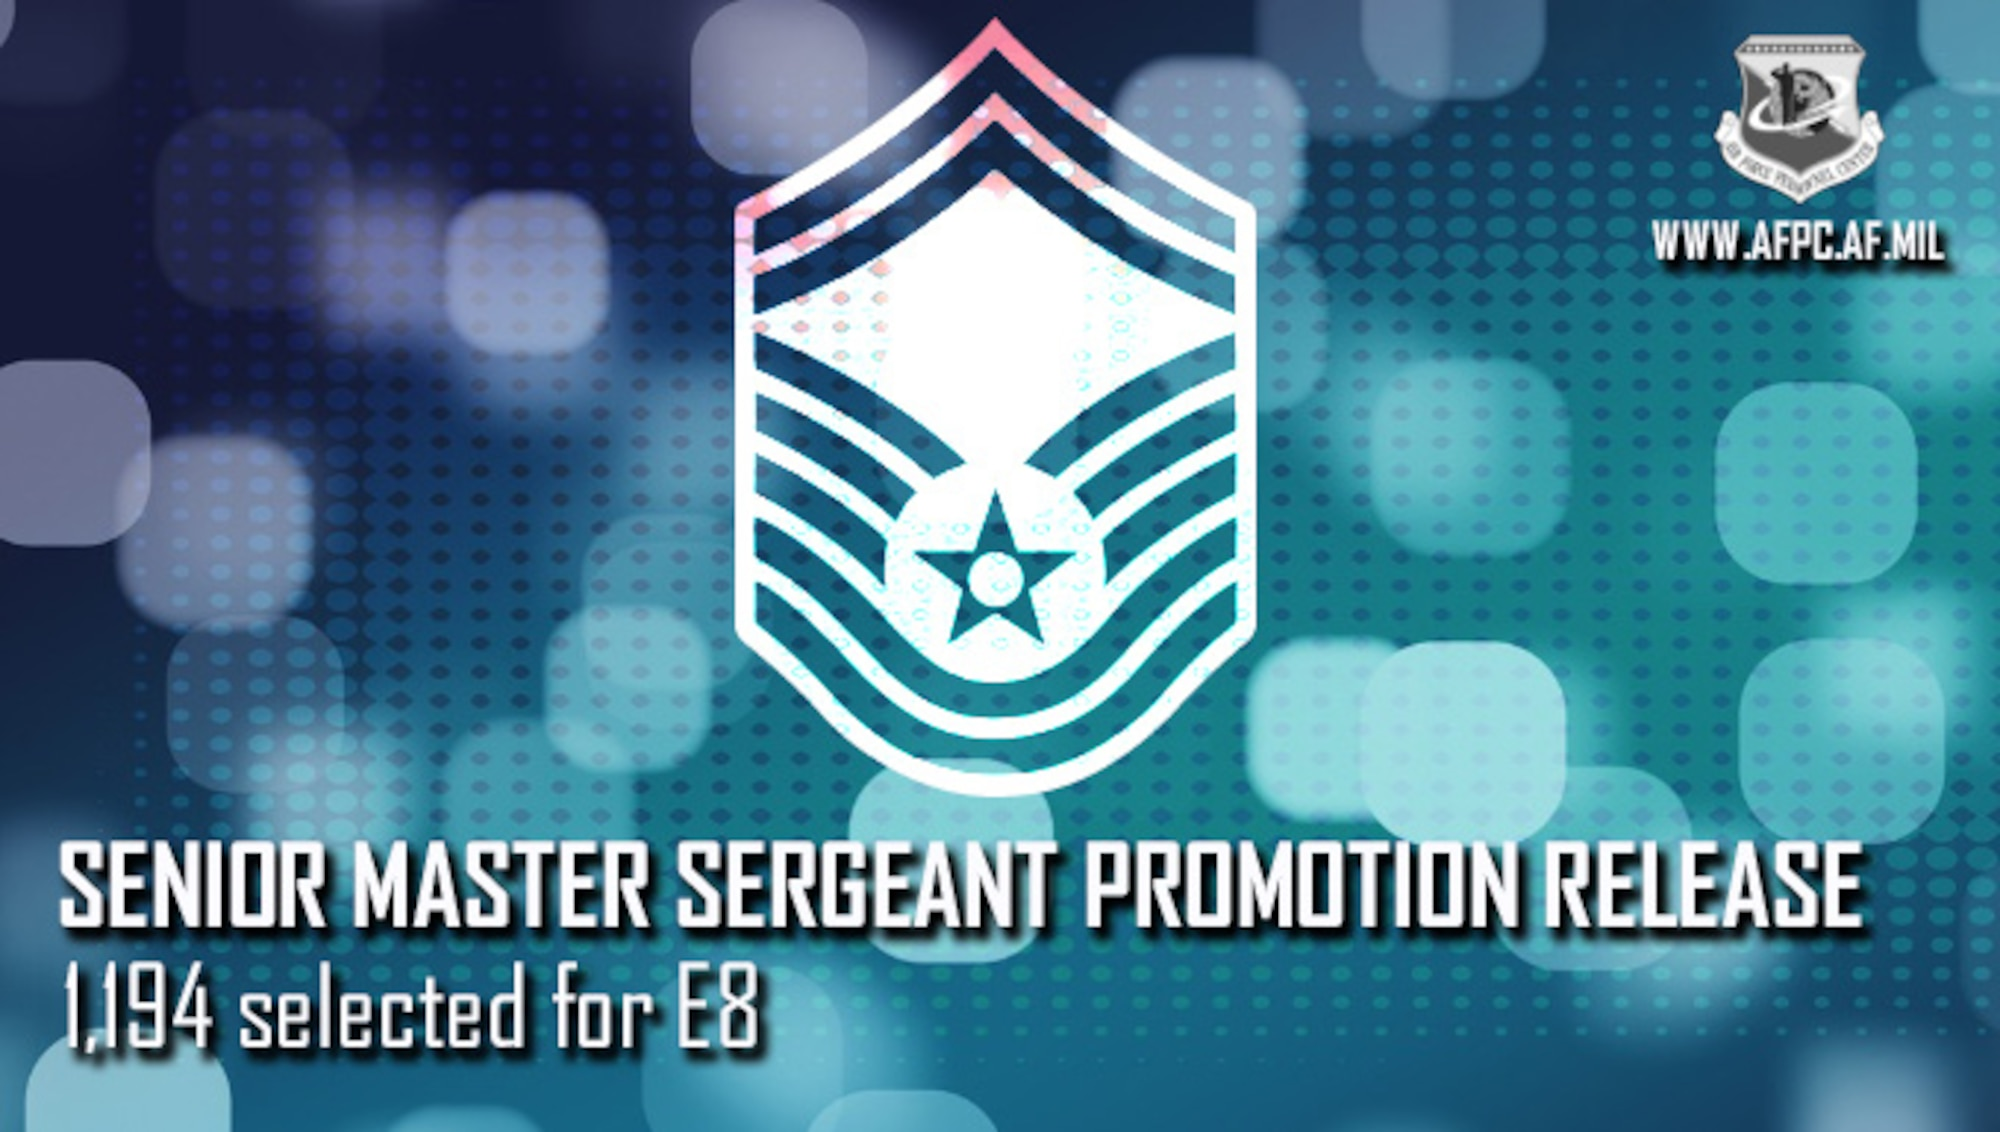 Blue Graphic with senior master sergeant stripes announcing the promotion release